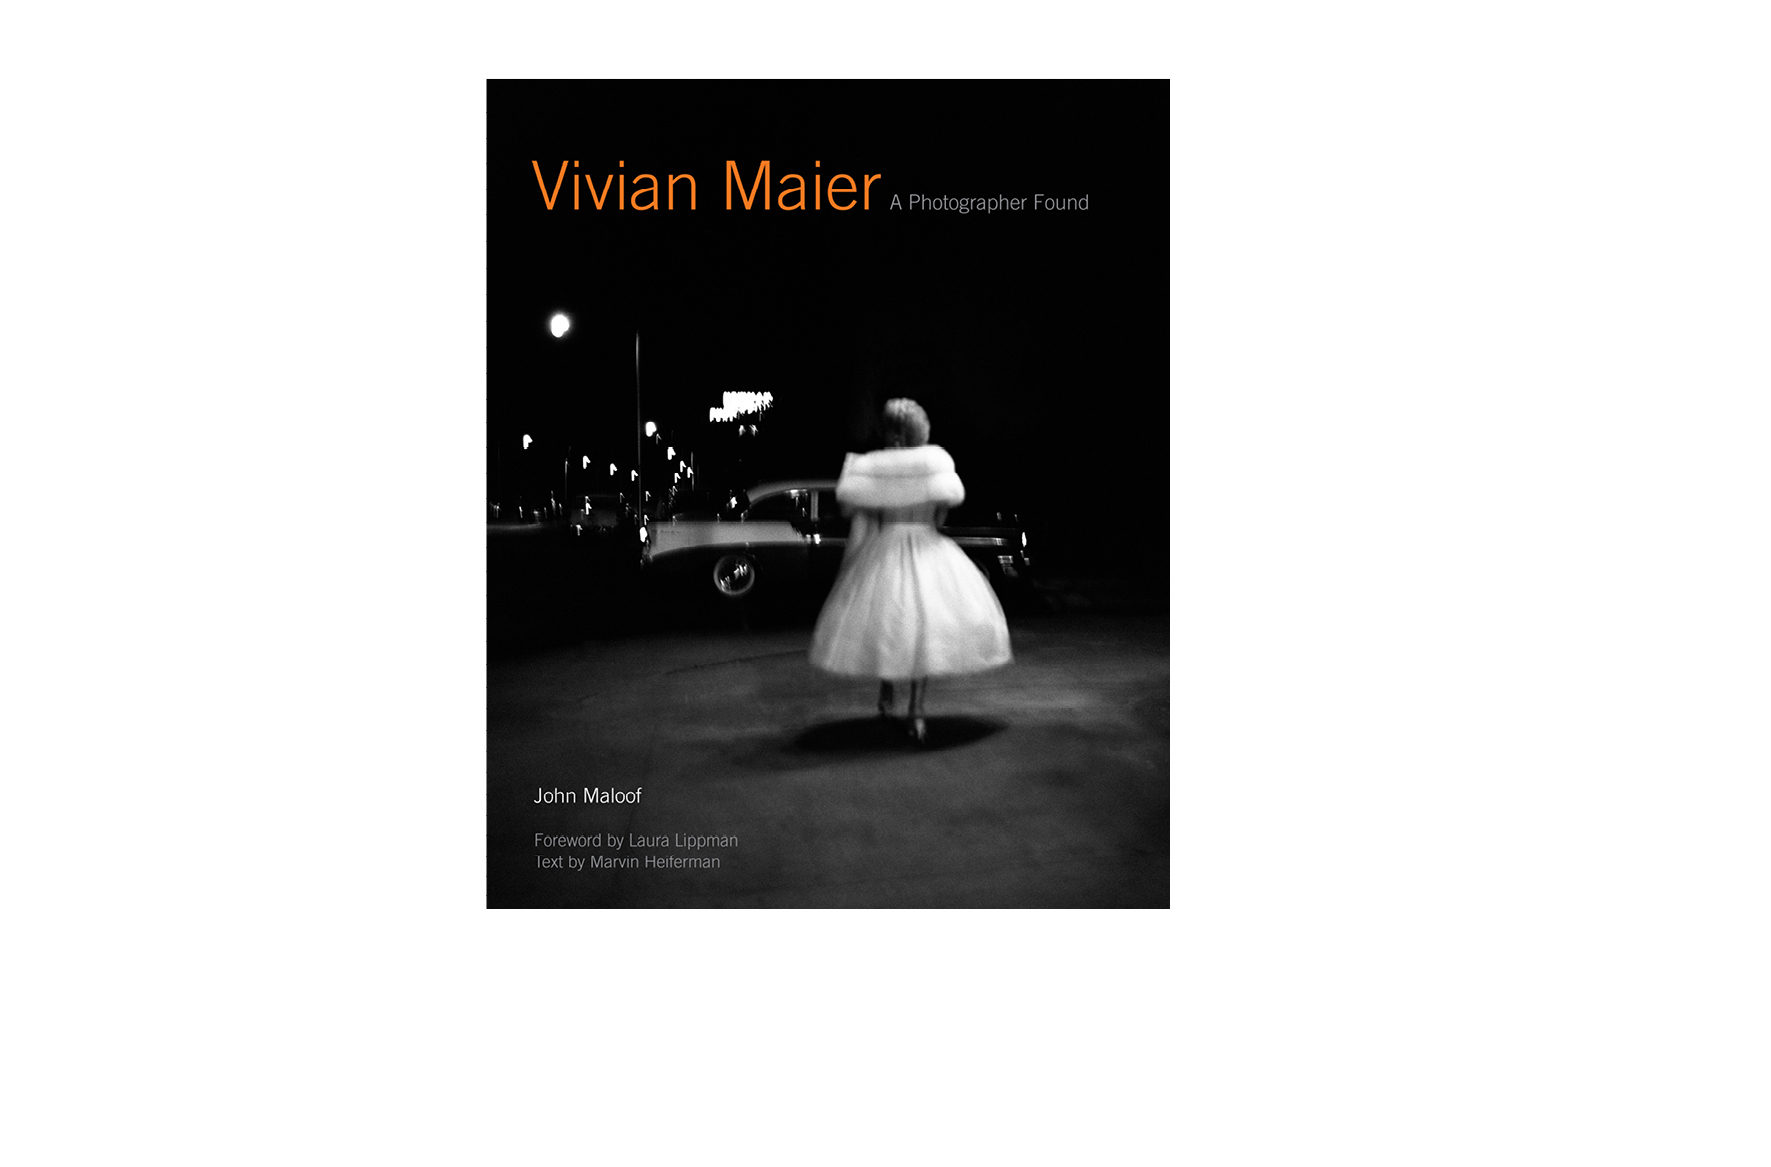 Vivian Maier: A Photographer Found -  10.25 X 12.5 in., 288 pg., hardcover with jacket. Design; Galen Smith // Publisher; Harper Design